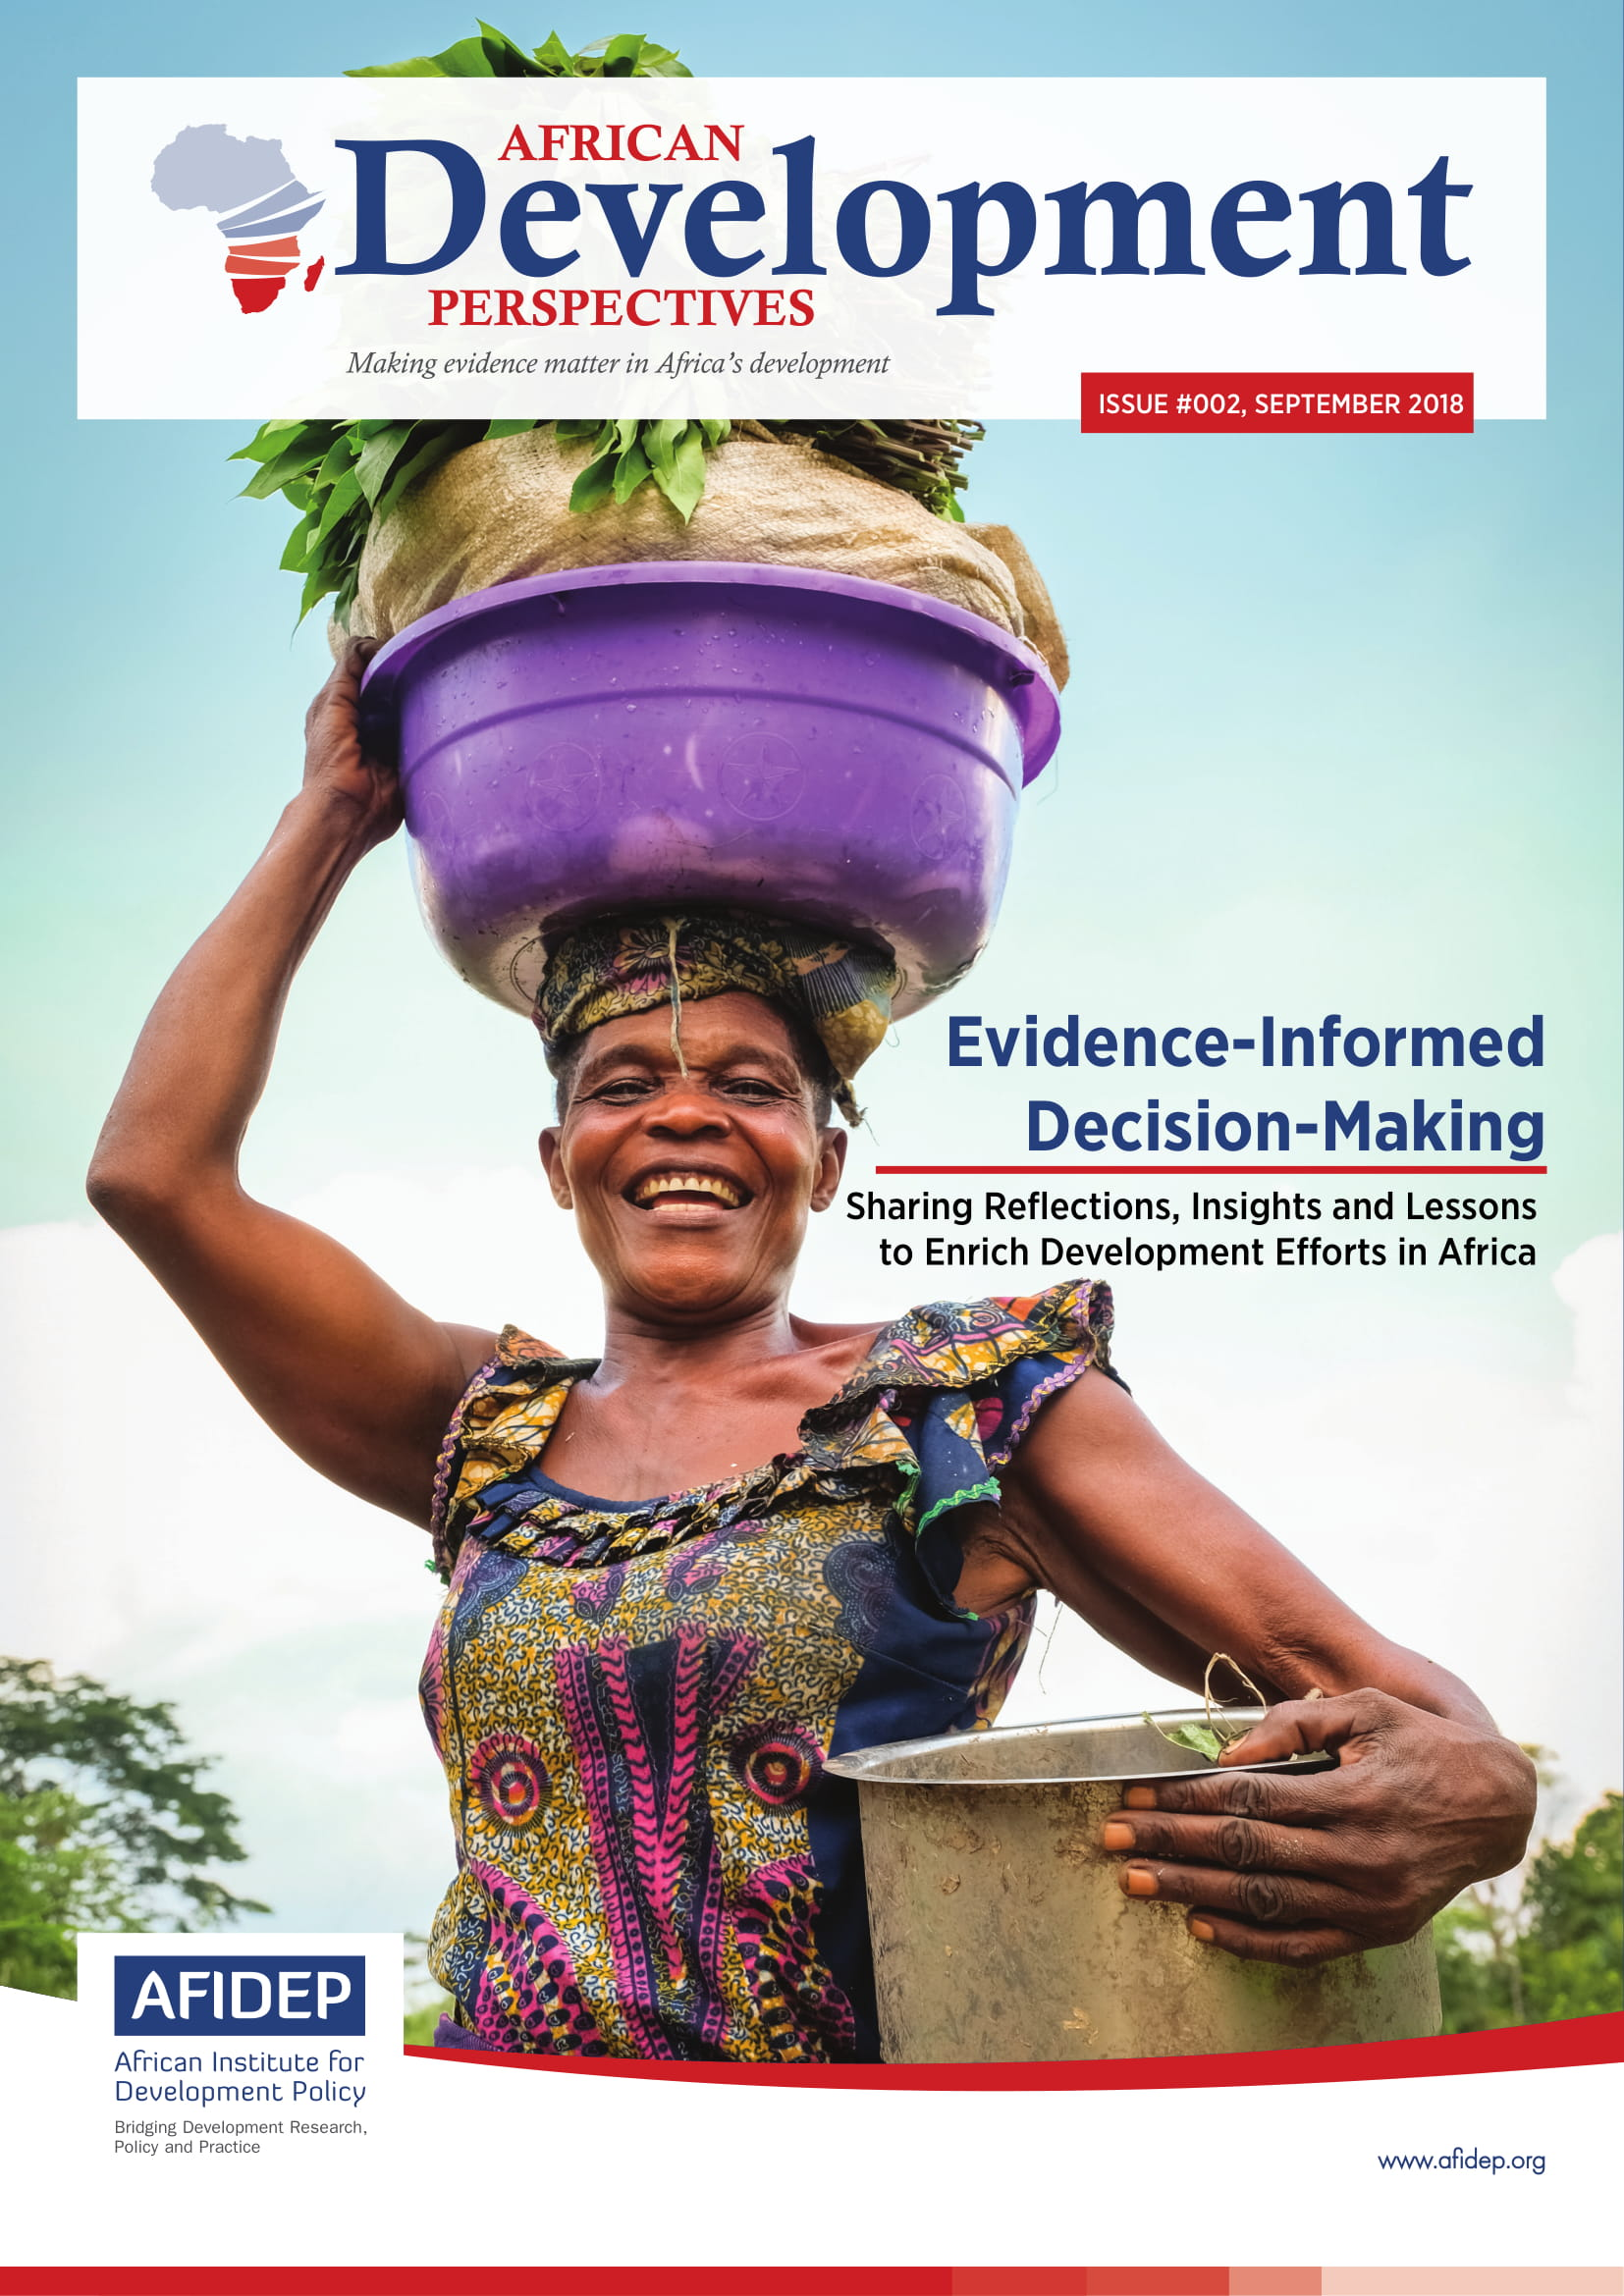 African-Development-Perspectives-AFIDEP-Magazine-spreads-26.09.2018-pages-1-1.jpg